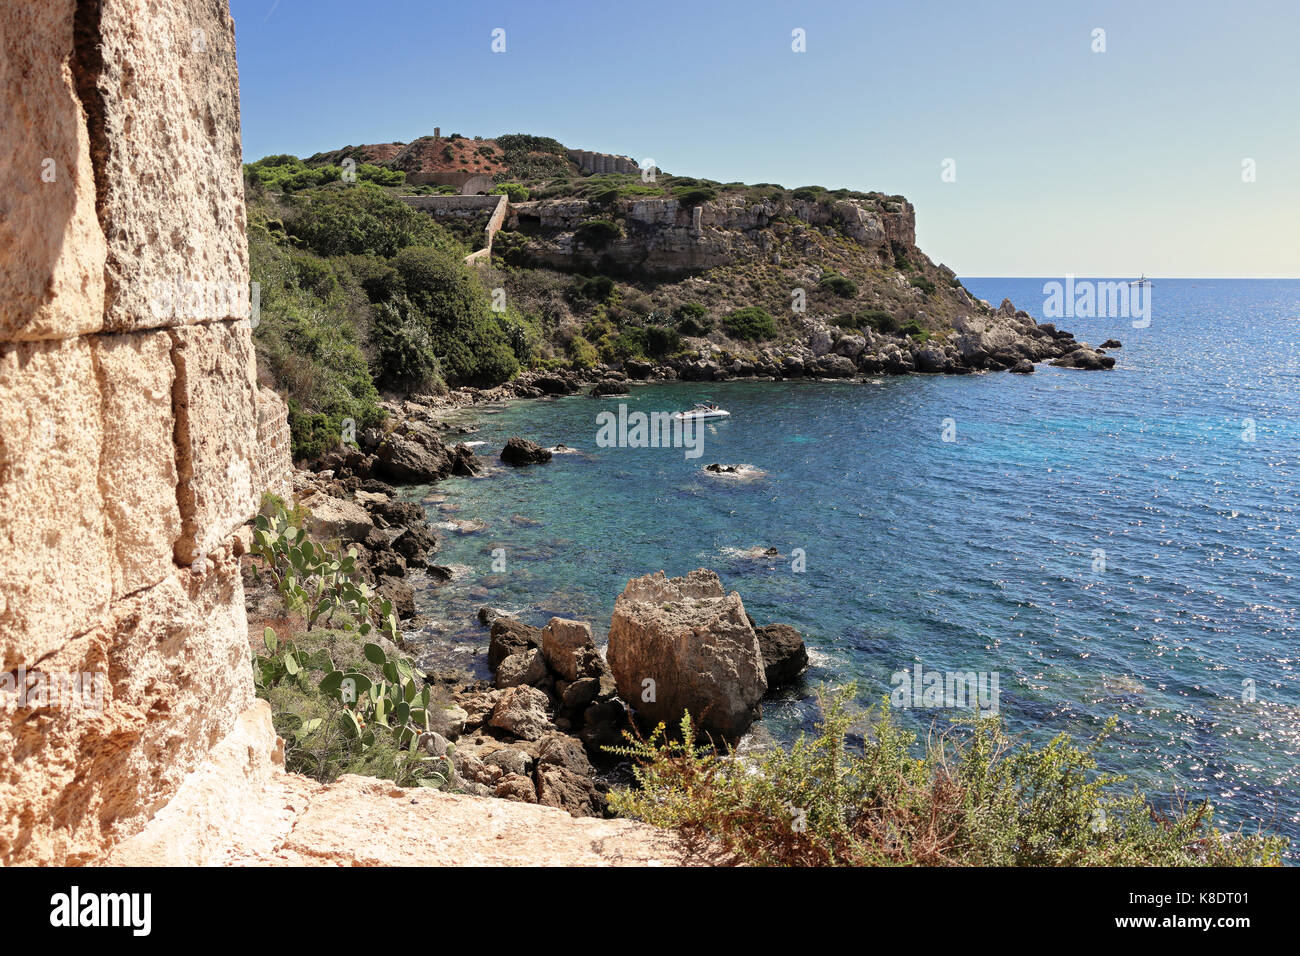 Coastal view on Balearic island of Minorca in the Mediterranean sea with anchored boats in a cove - Stock Image